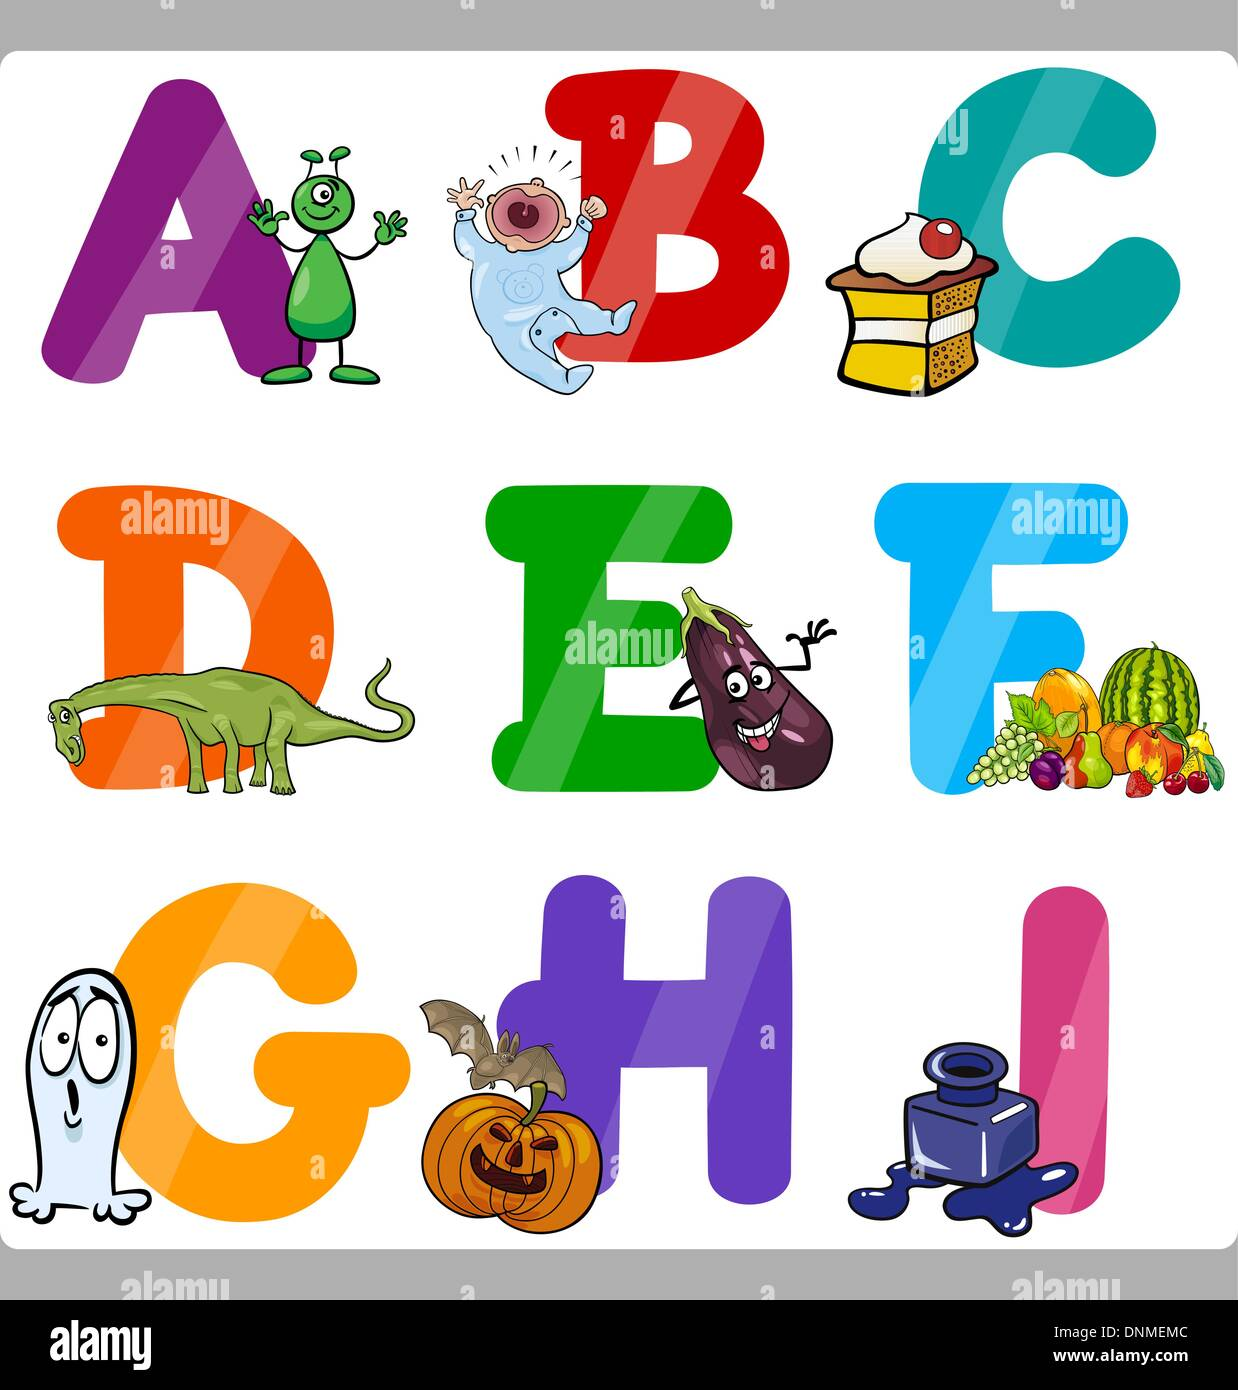 Cartoon Illustration Of Funny Capital Letters Alphabet With Objects